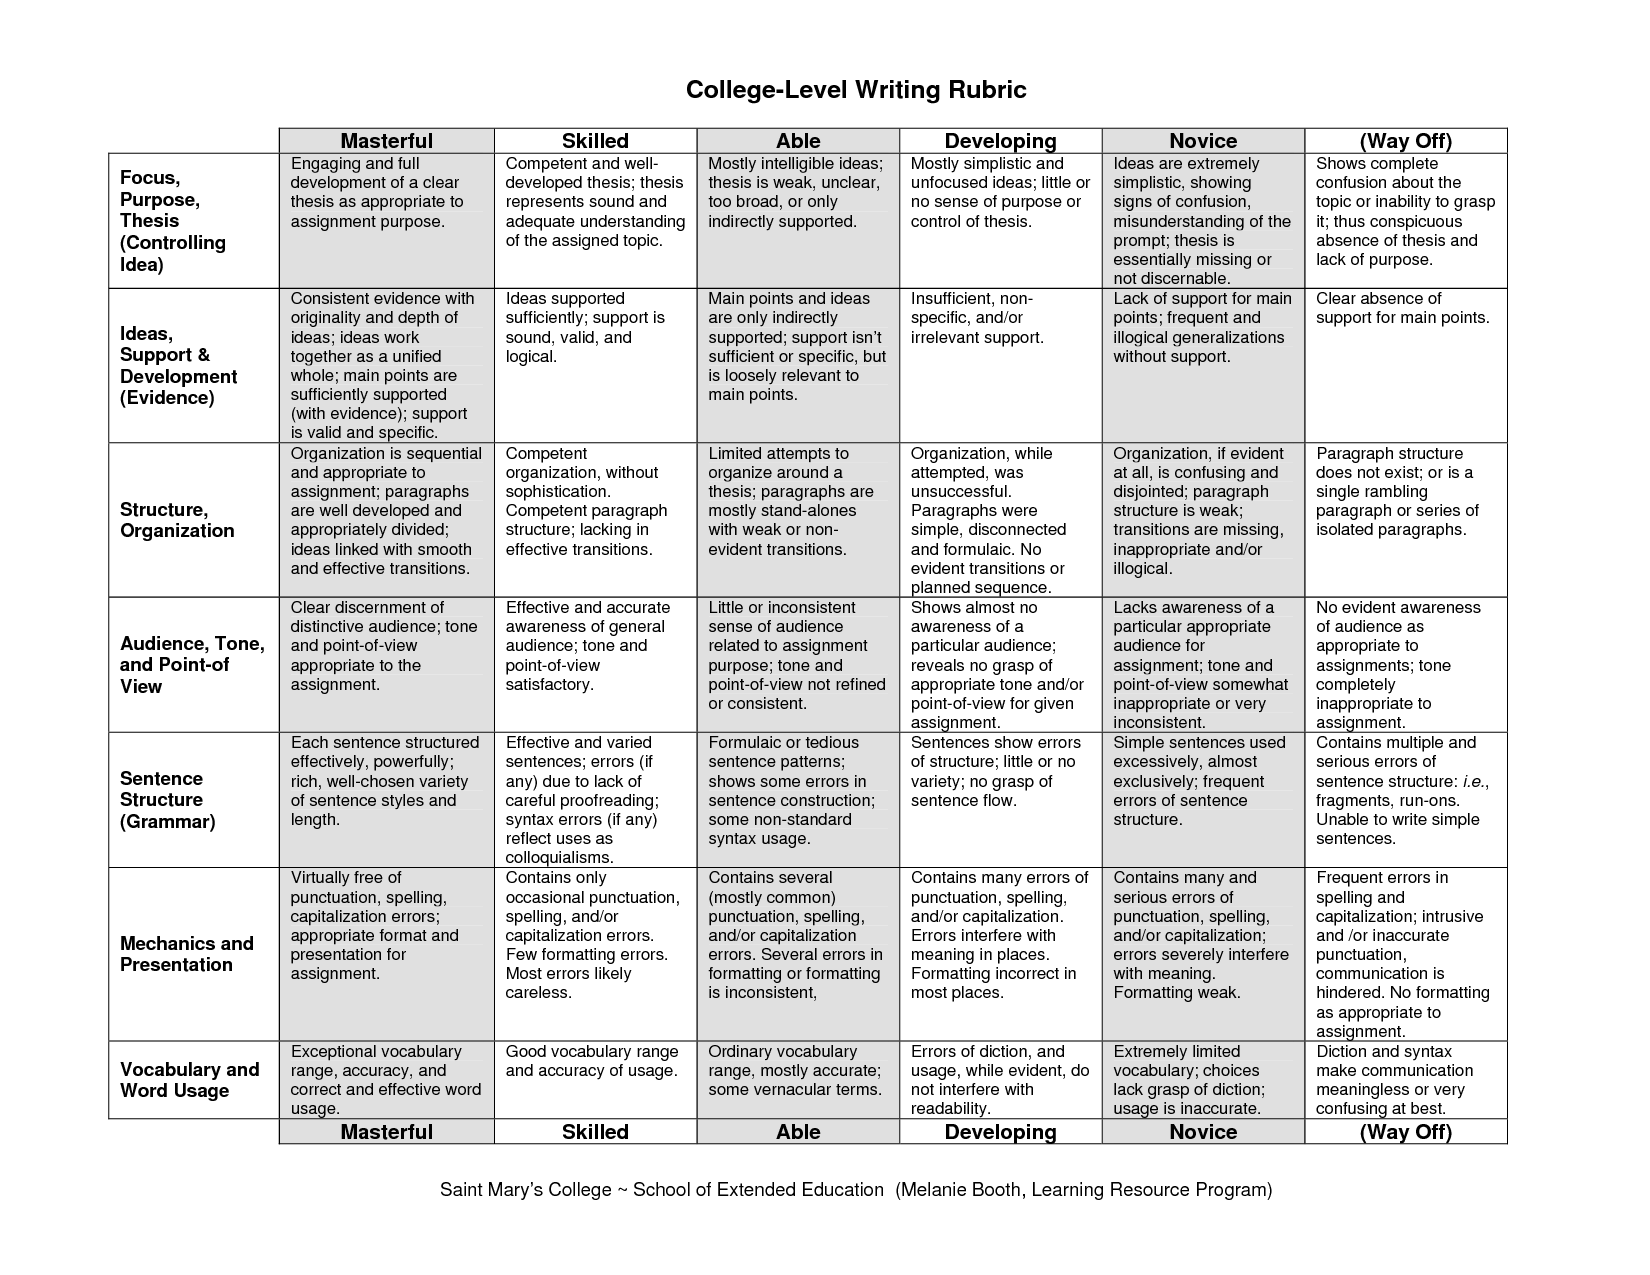 ap english language essay rubrics Ap language and composition – grading rubric – rhetorical essay grade description scale 1 scale 2 scale 3 scale 4 9 essays earning a score of 9 meet the criteria.